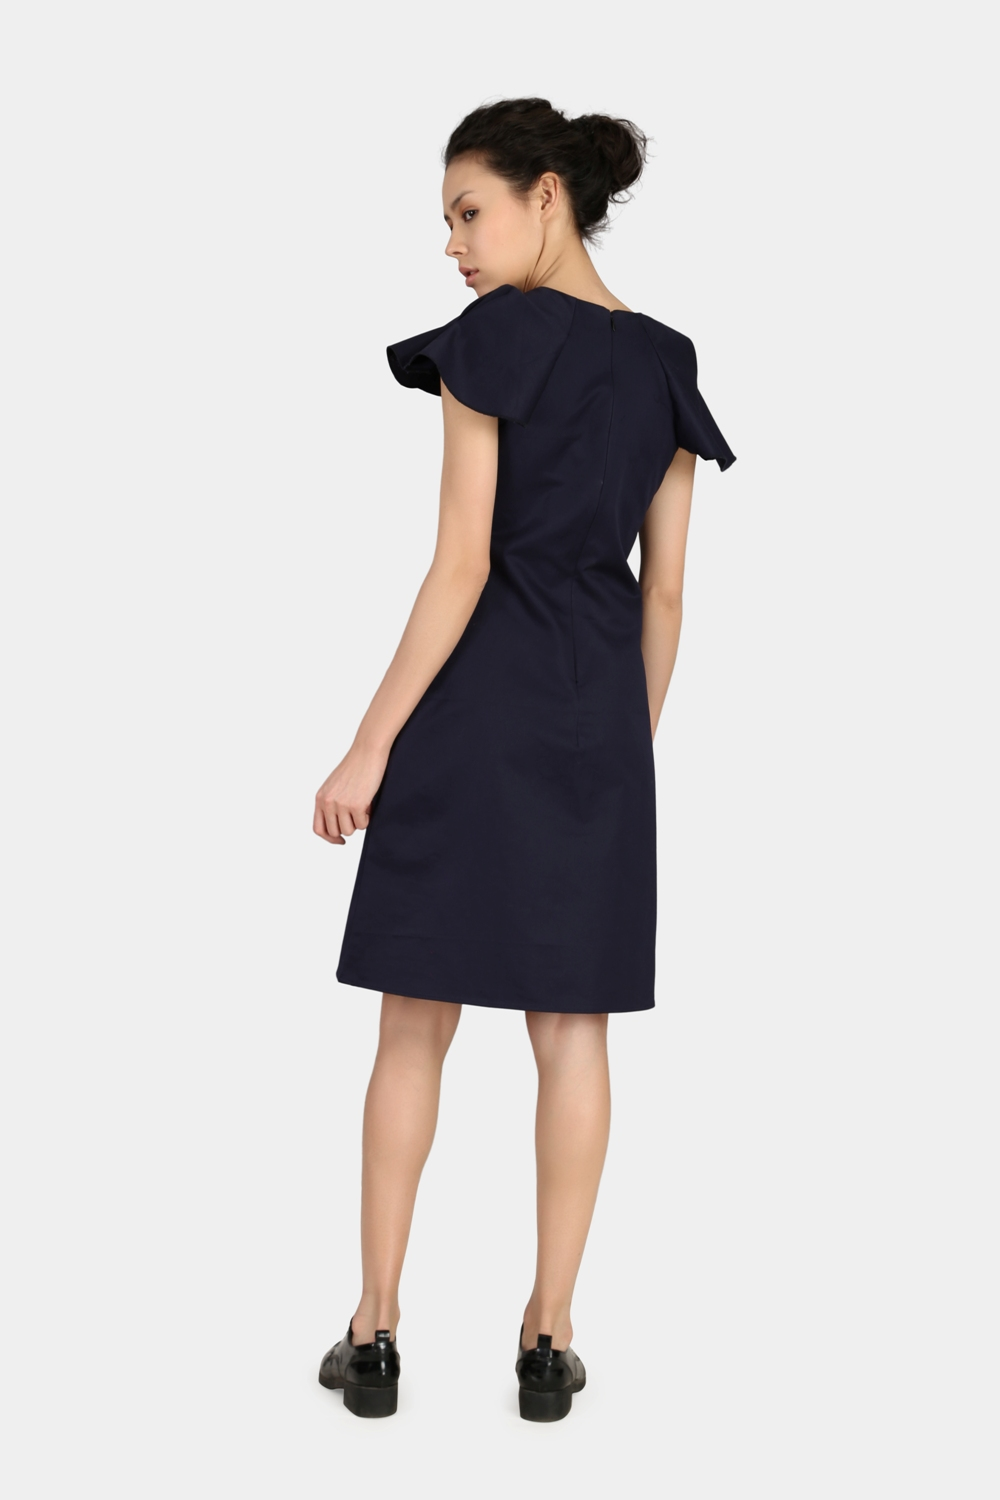 Navy Blue Relaxed Work Wear Dress -2